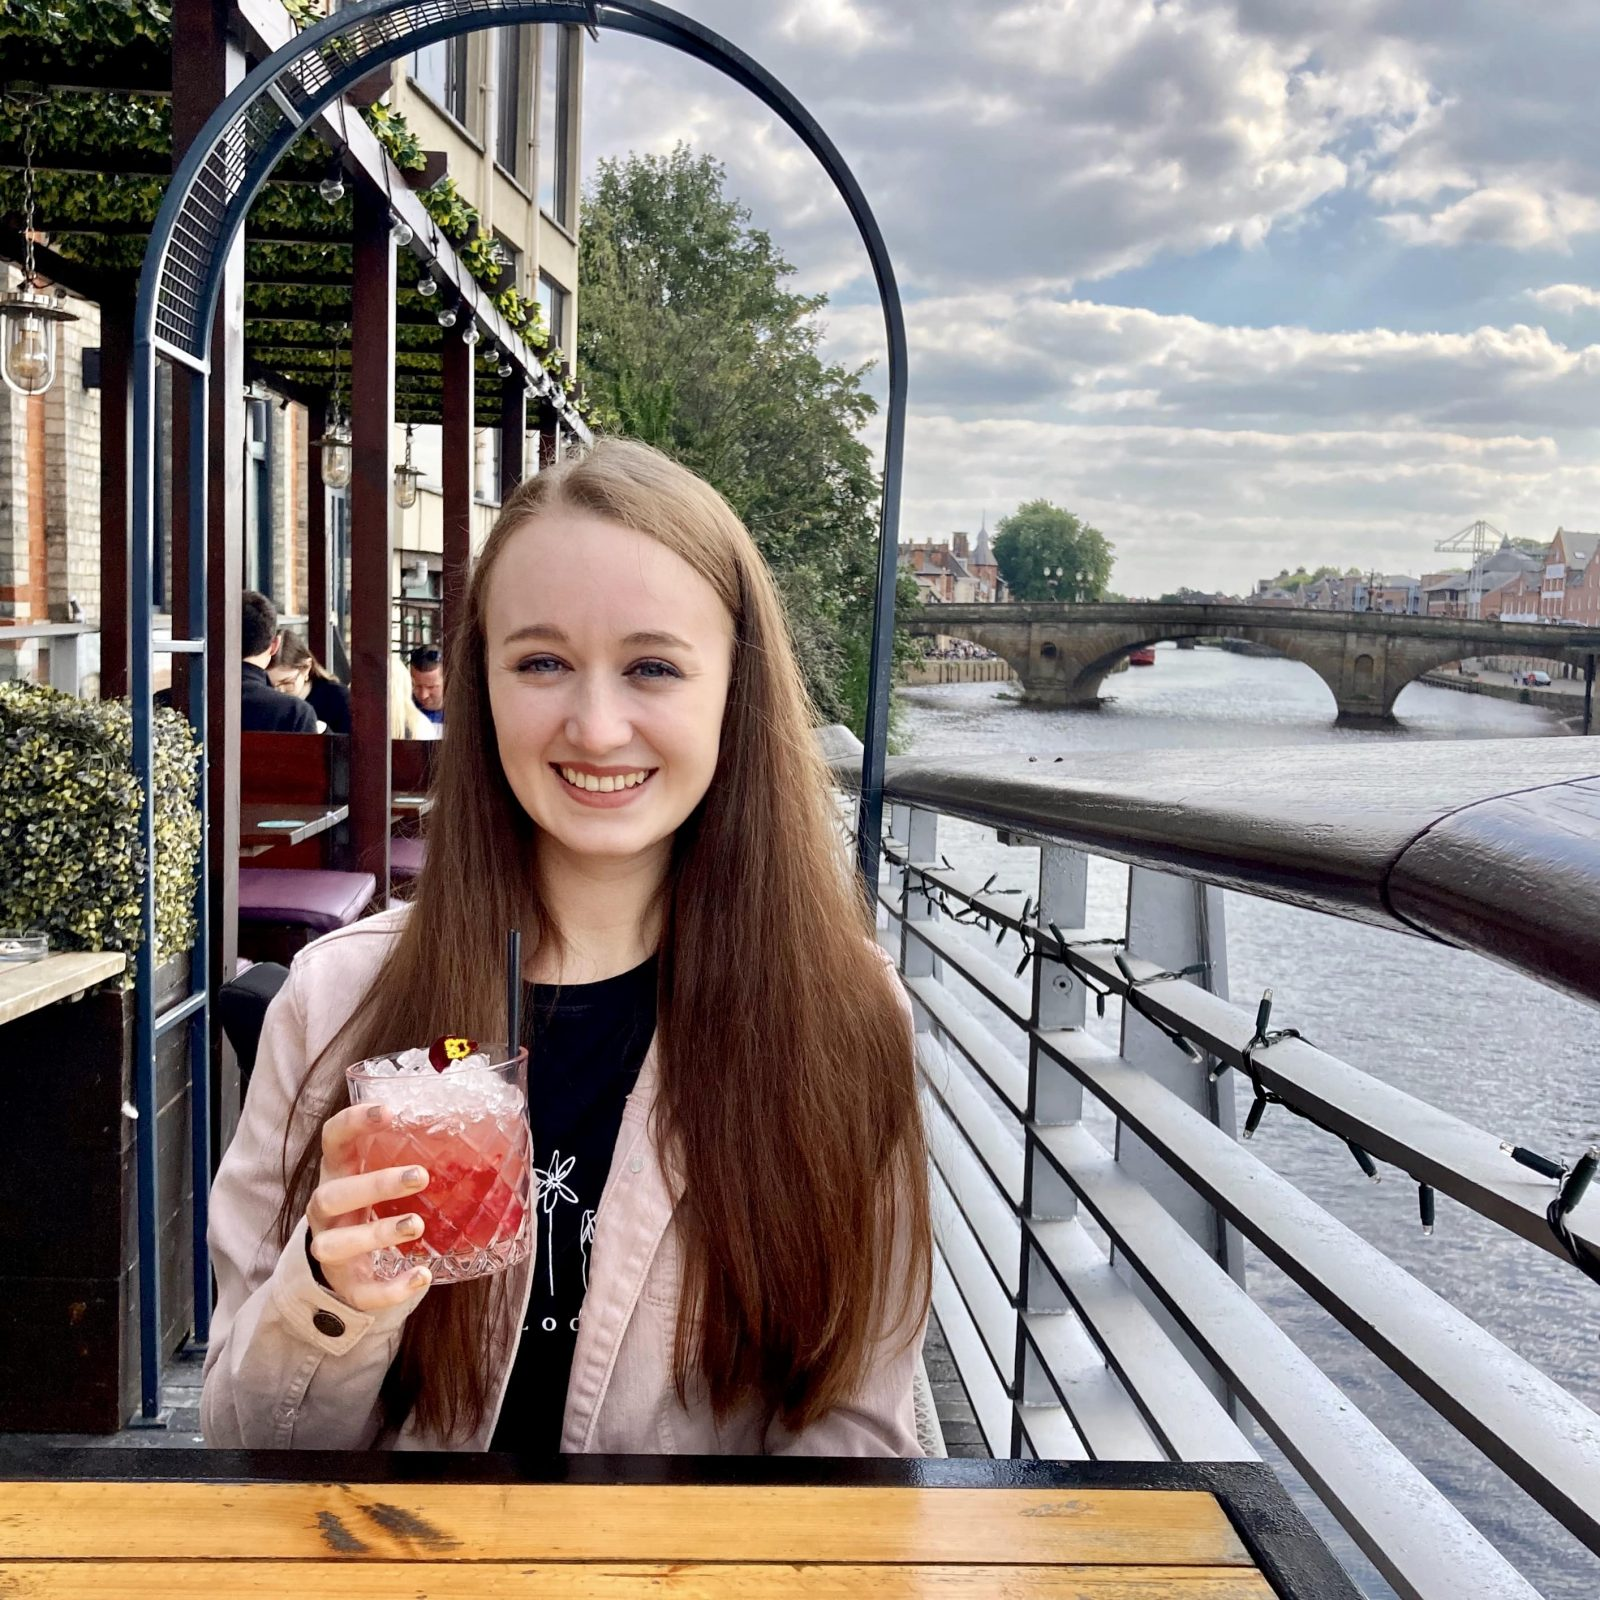 pippa sat at table outdoors with river visible in background. pippa is wearing a pink denim jacket with a black top under it, holding up a red 'mocktail' and smiling